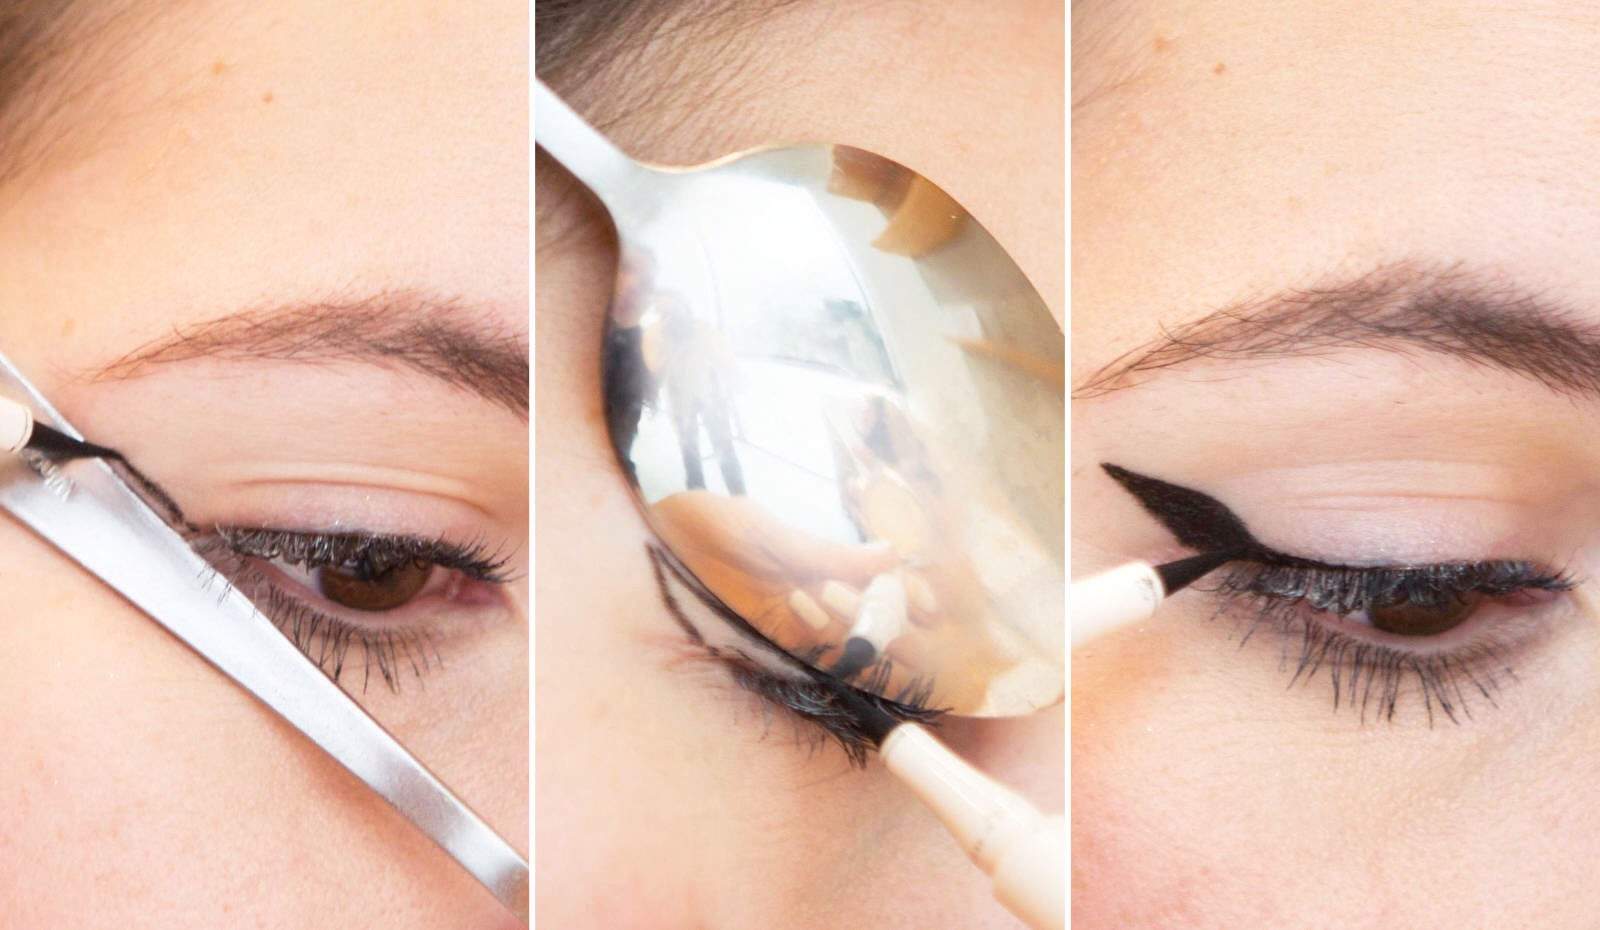 This is how you do the cat eye it works wonders especially if you have shakey hands